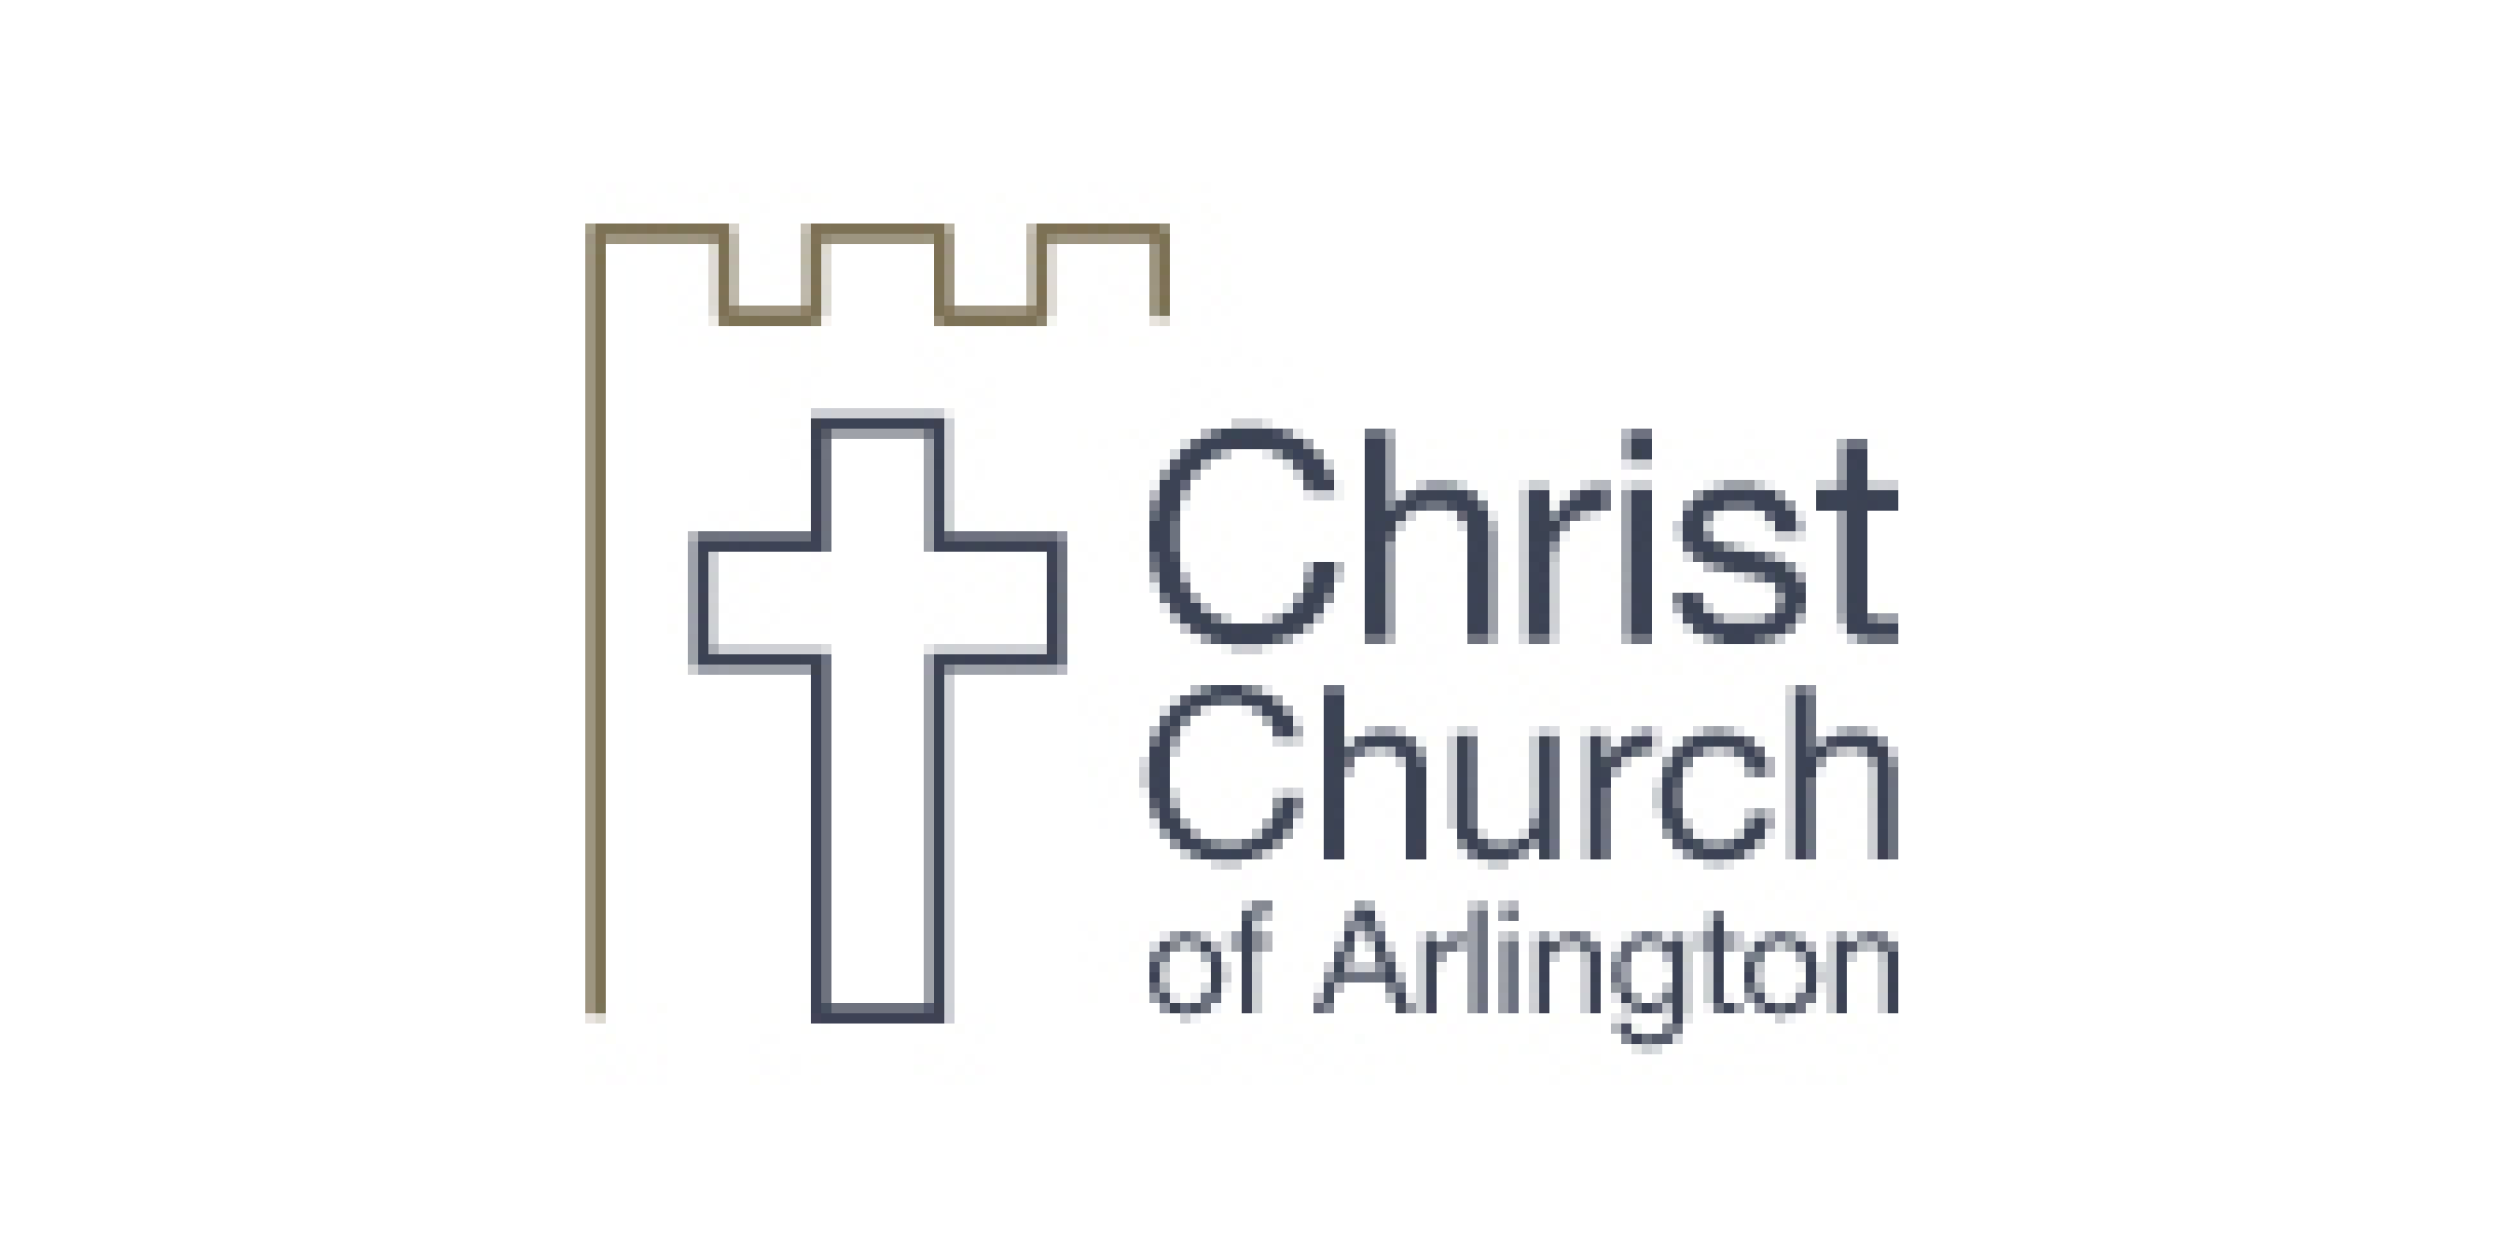 arlington-va-turley-trot-mayflower-sponsor-christ-church